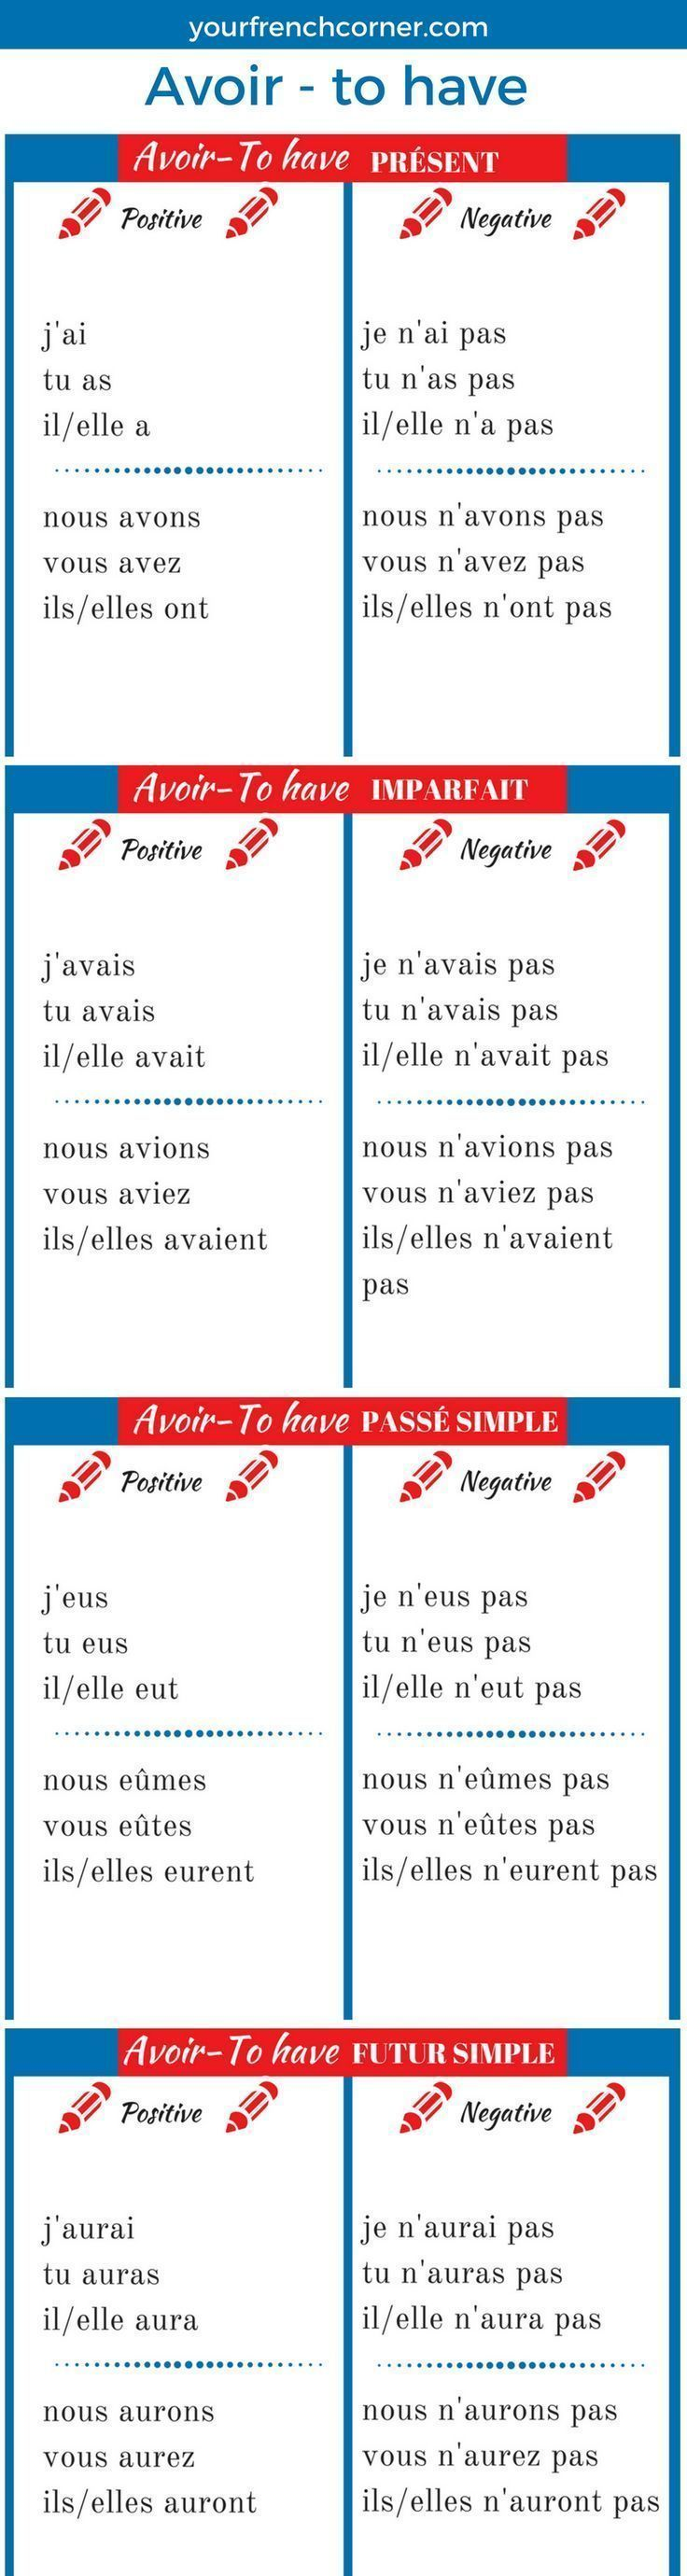 How To Conjugate French Verbs ( Avoir-to have)